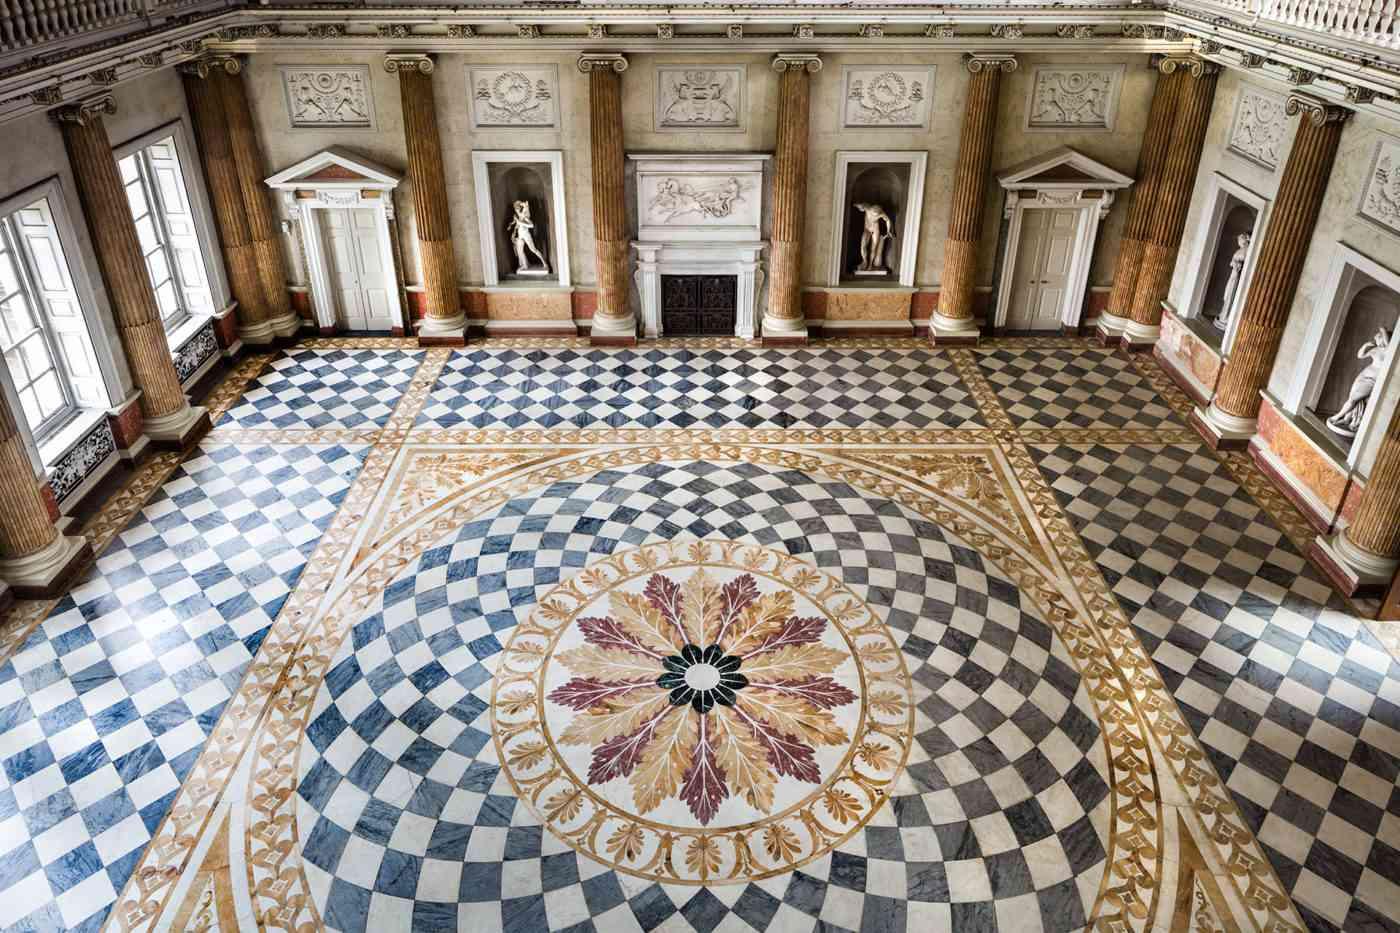 The Marble Saloon, a decorated marble-floored ballroom with roman columns along the wall, in Wentworth Woodhouse